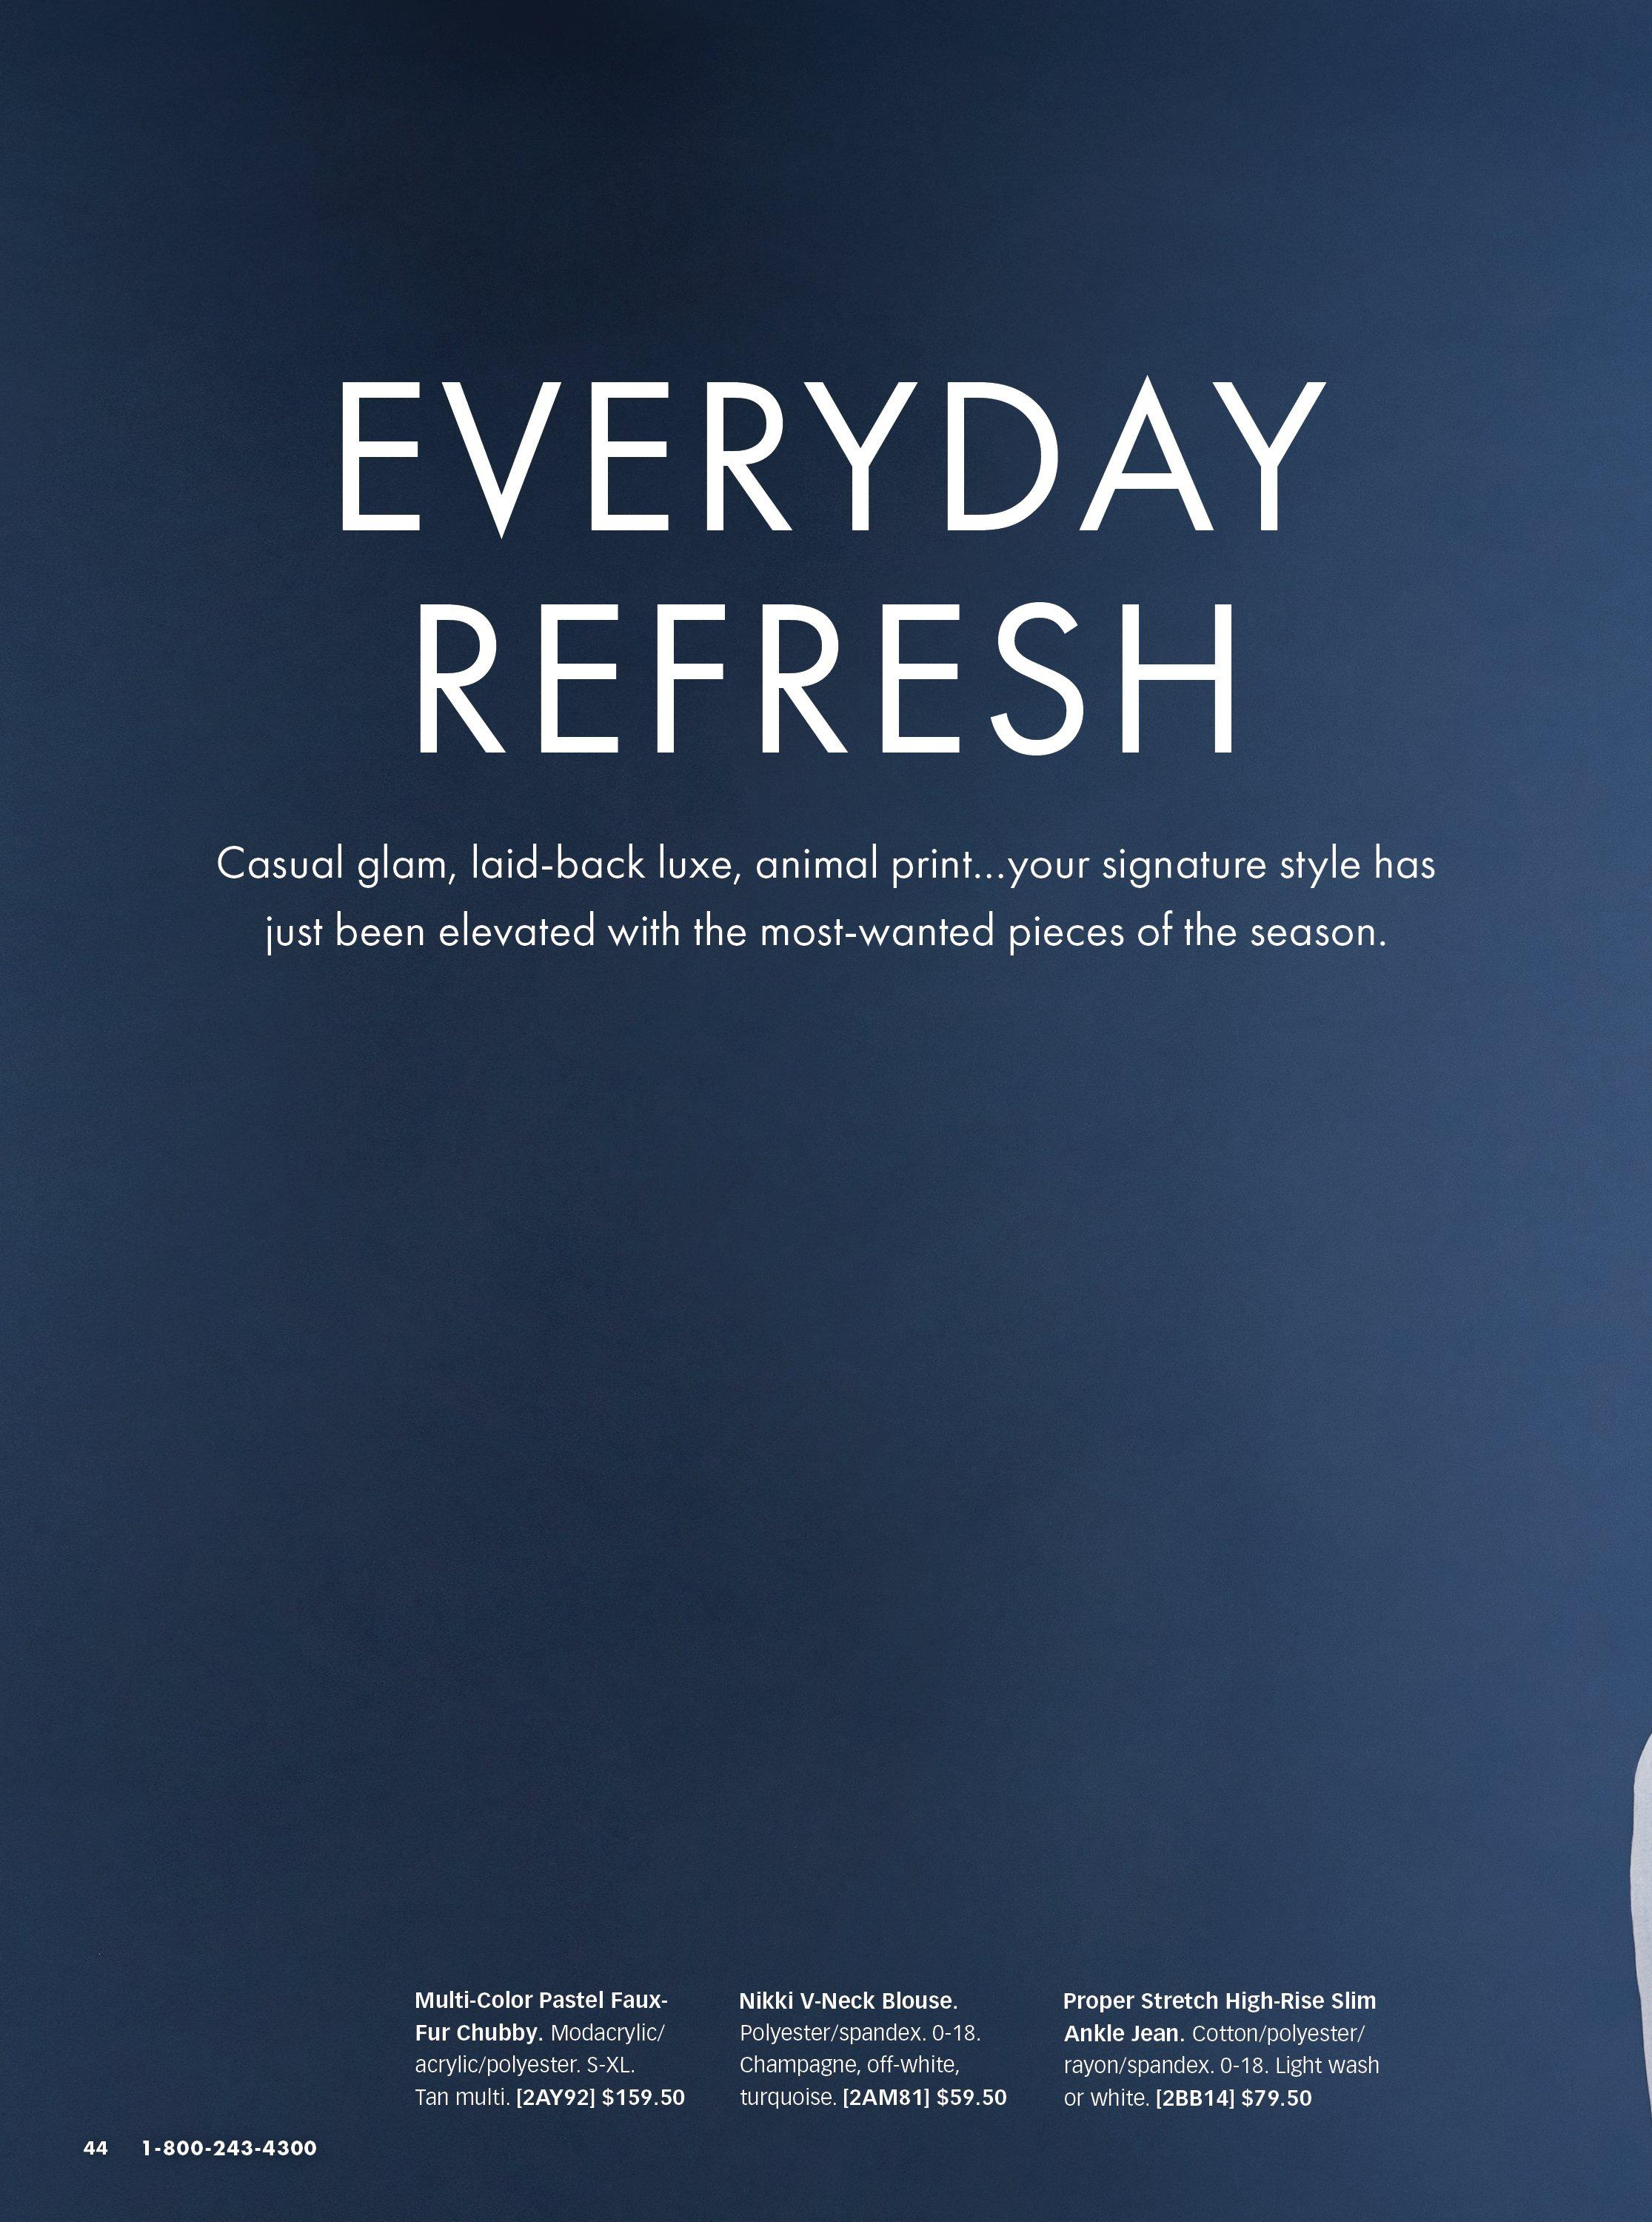 white text on blue background: everyday refresh